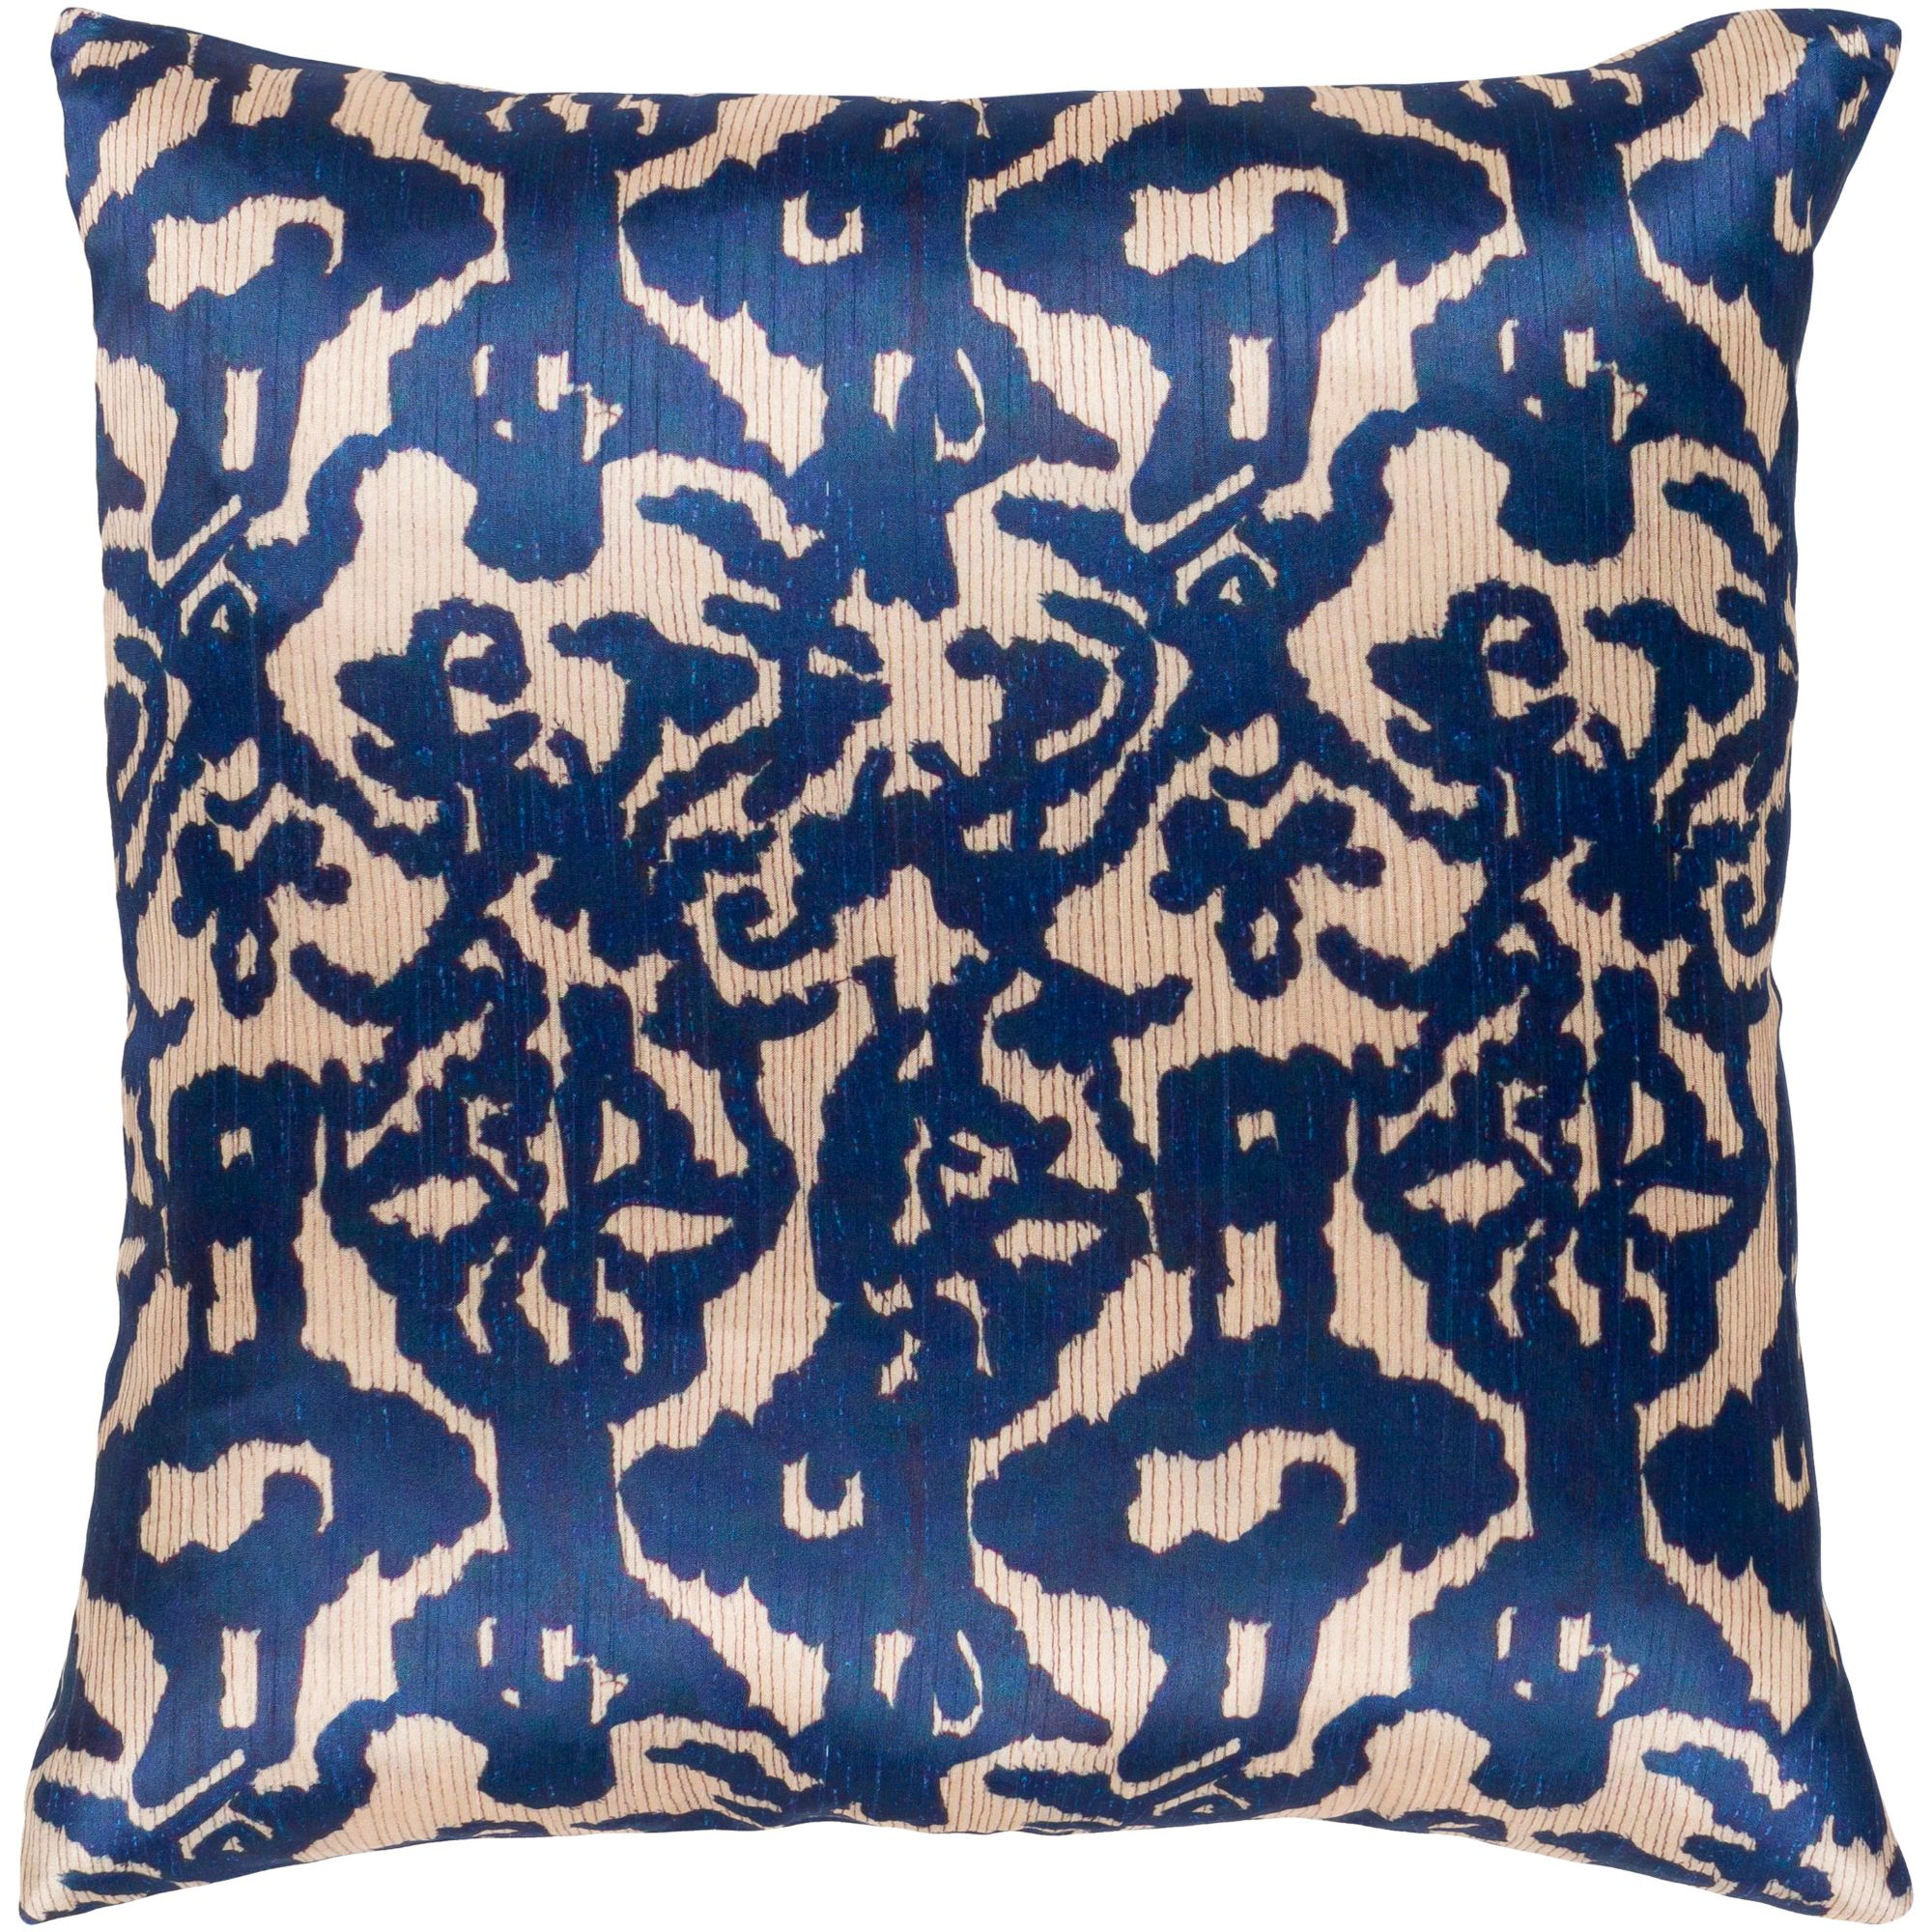 20 Navy Blue And Brown Damask Patterned Square Woven Throw Pillow Polyester Filler Walmart Com Walmart Com